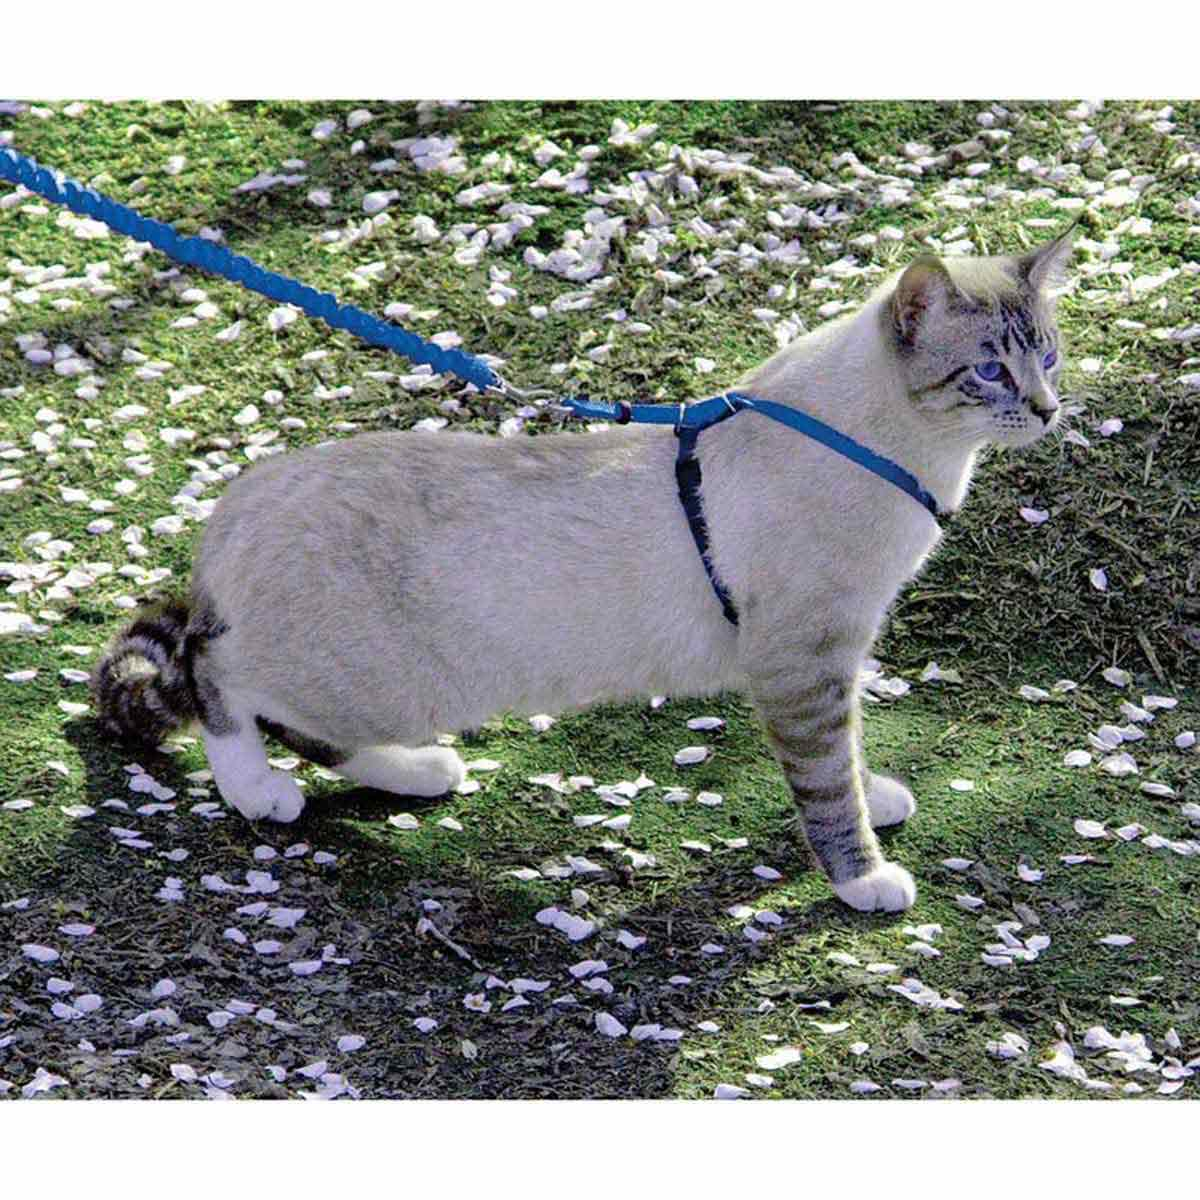 PetSafe Come With Me Kitty Small Royal Blue Harness and Bungee Leash for Cats